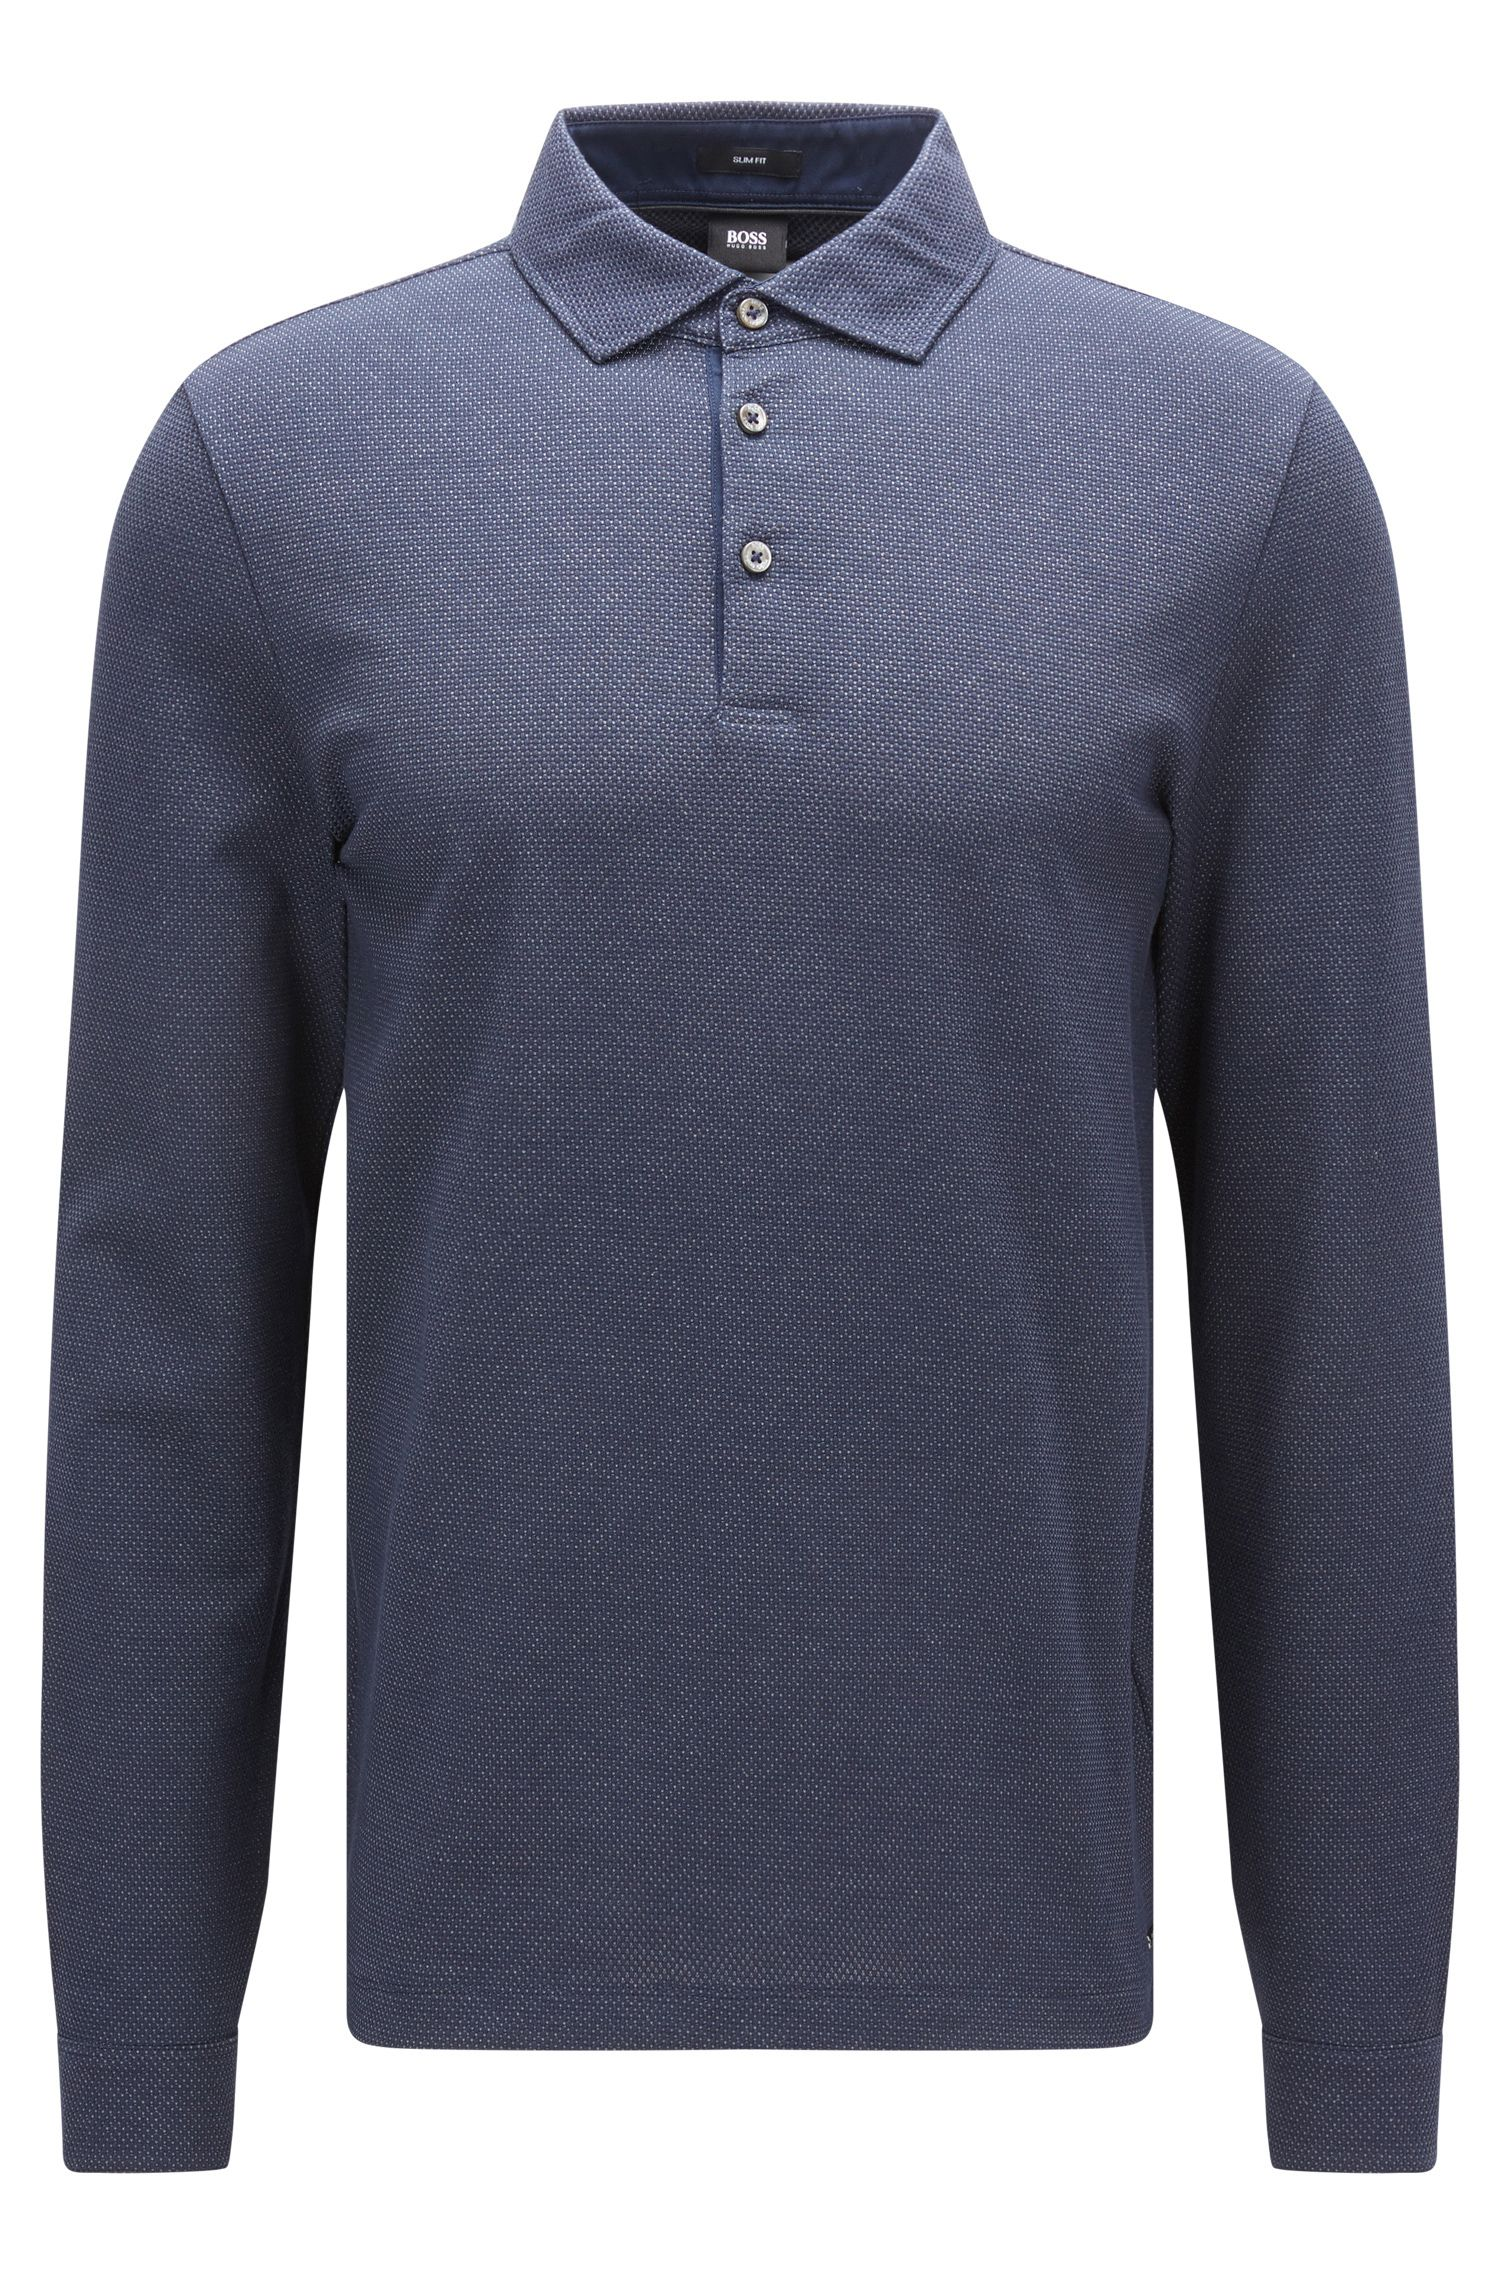 Long-sleeved two-tone cotton jacquard polo shirt in a slim fit